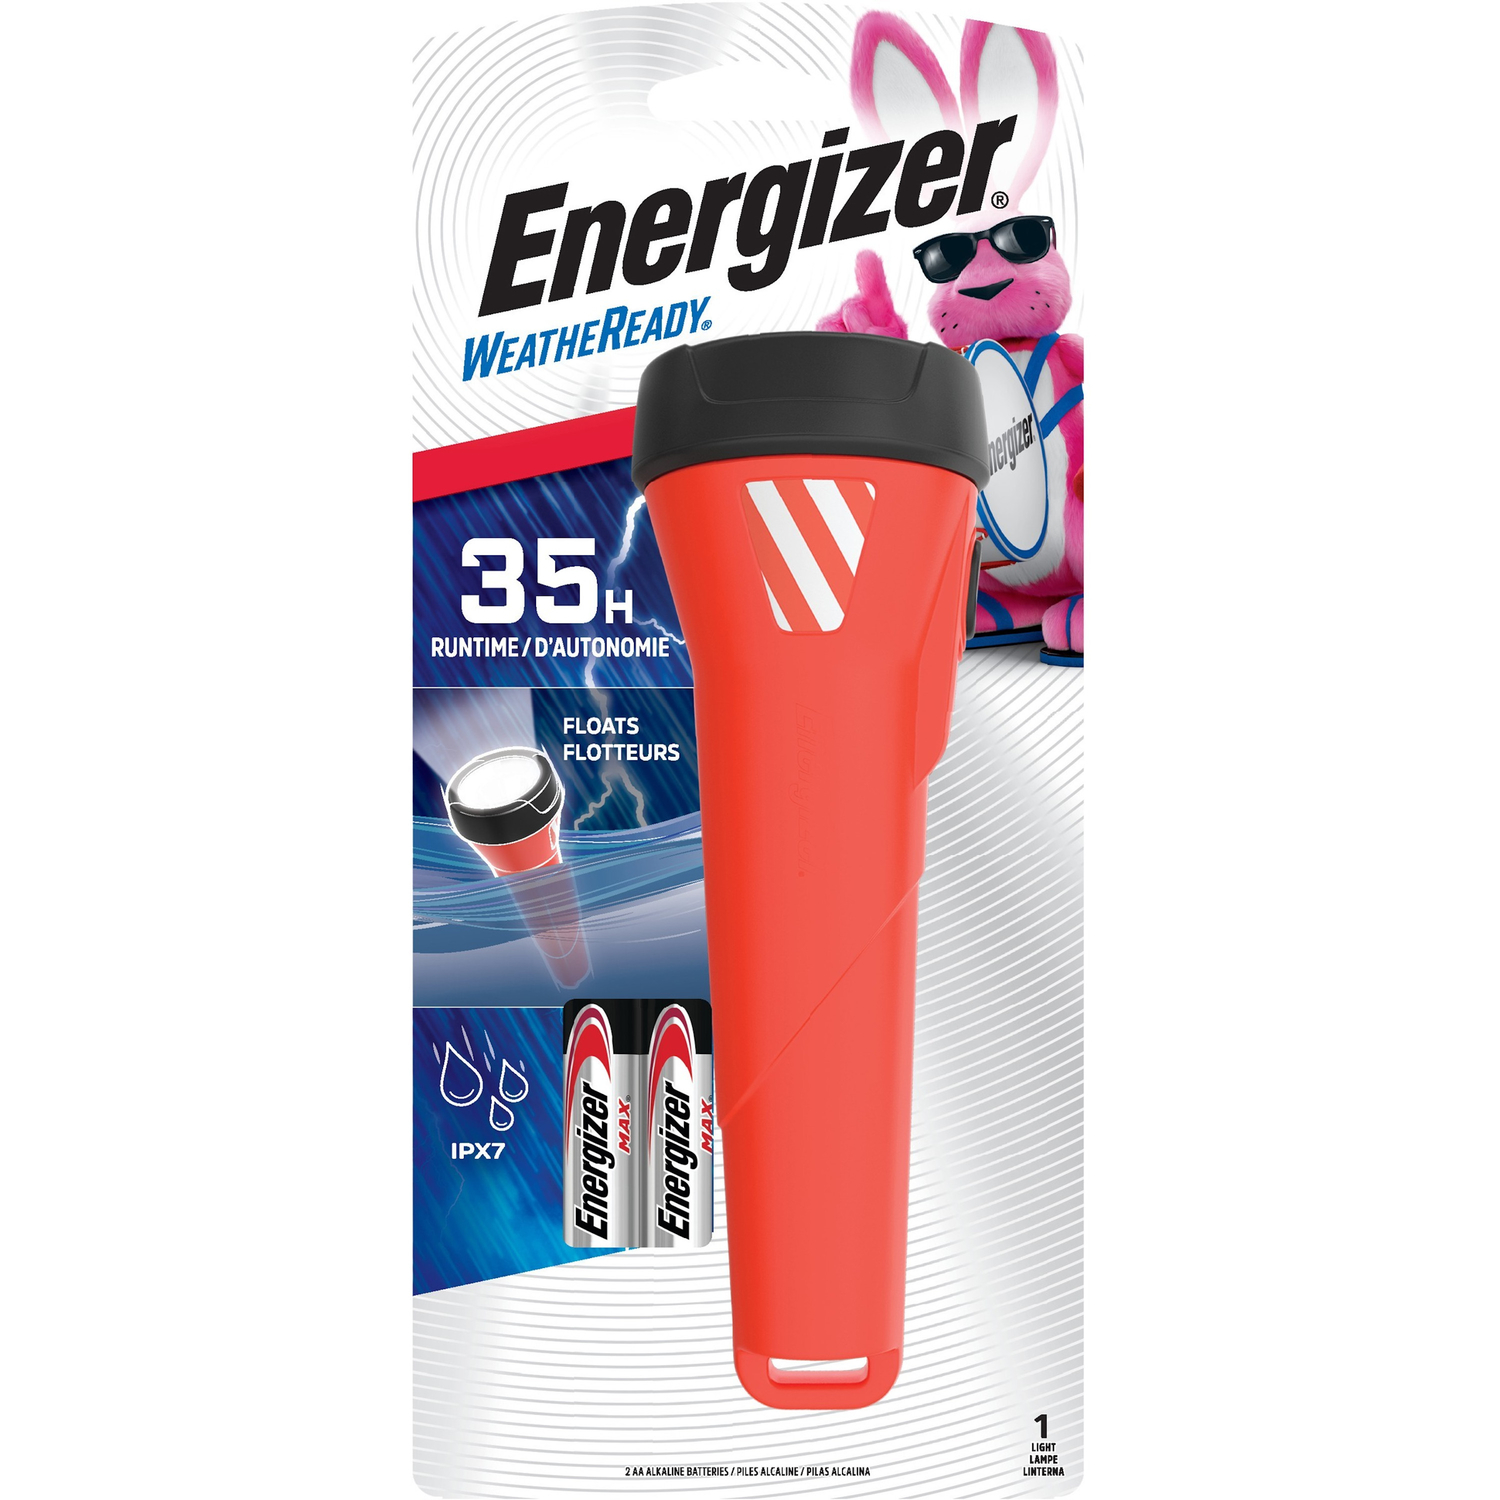 Energizer  Weatheready  55 lumens Black/Red  LED  Flashlight  AA